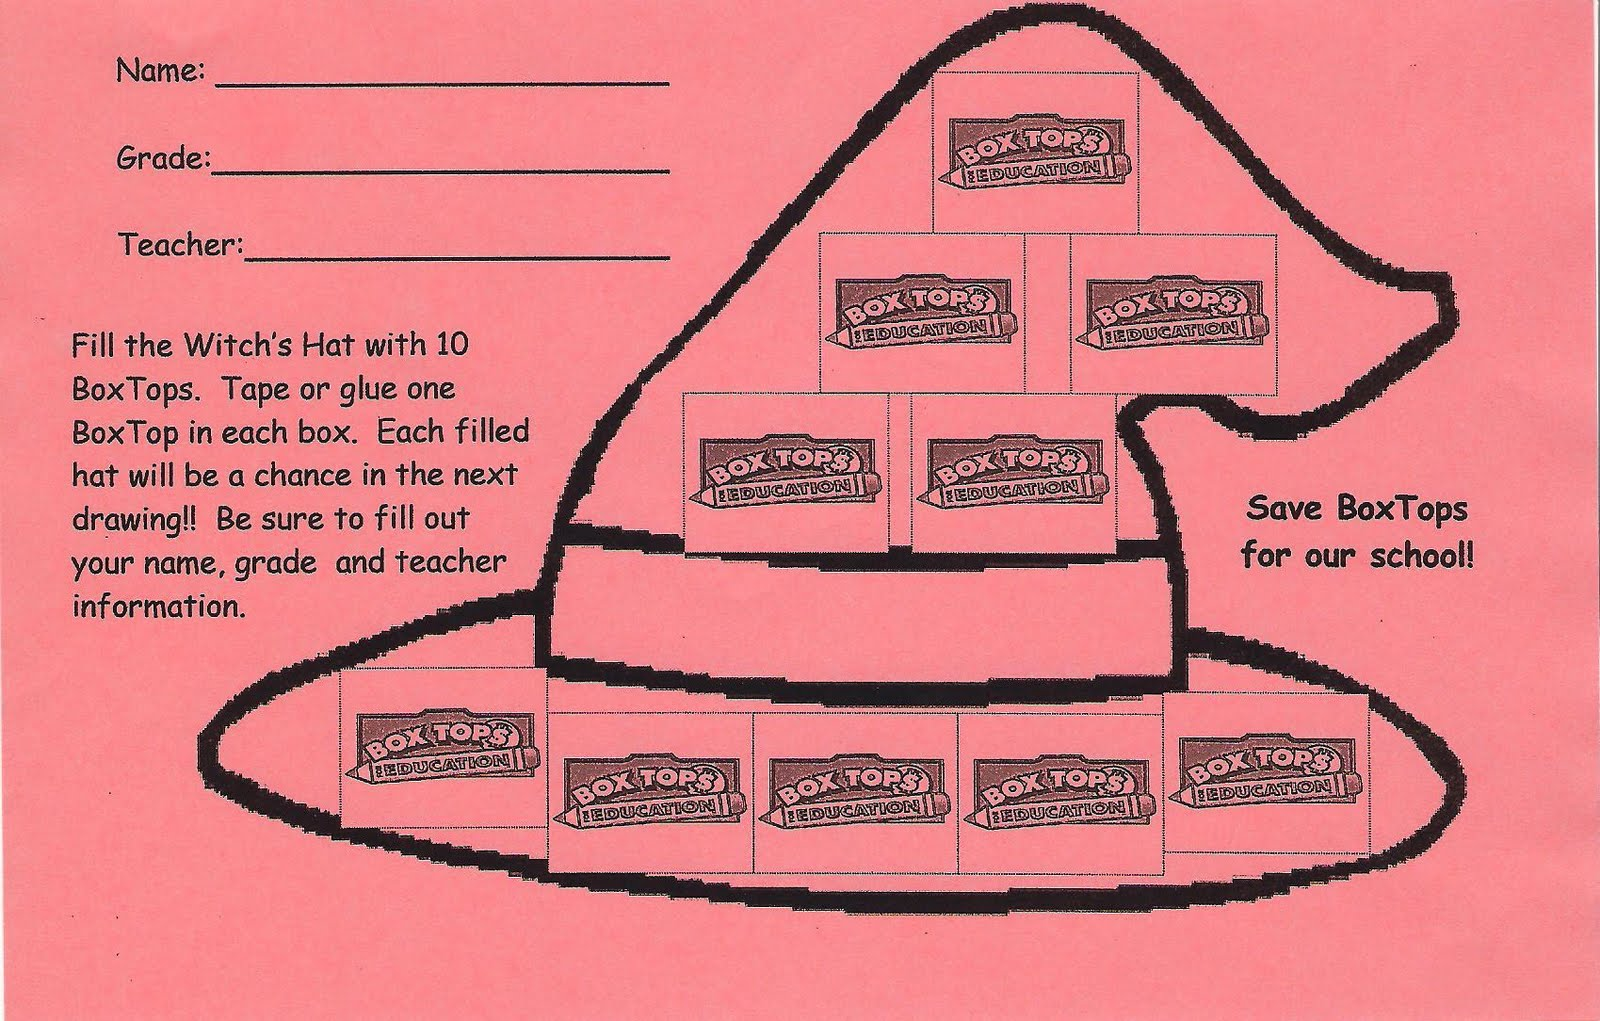 Cle Pta Box Tops Competition